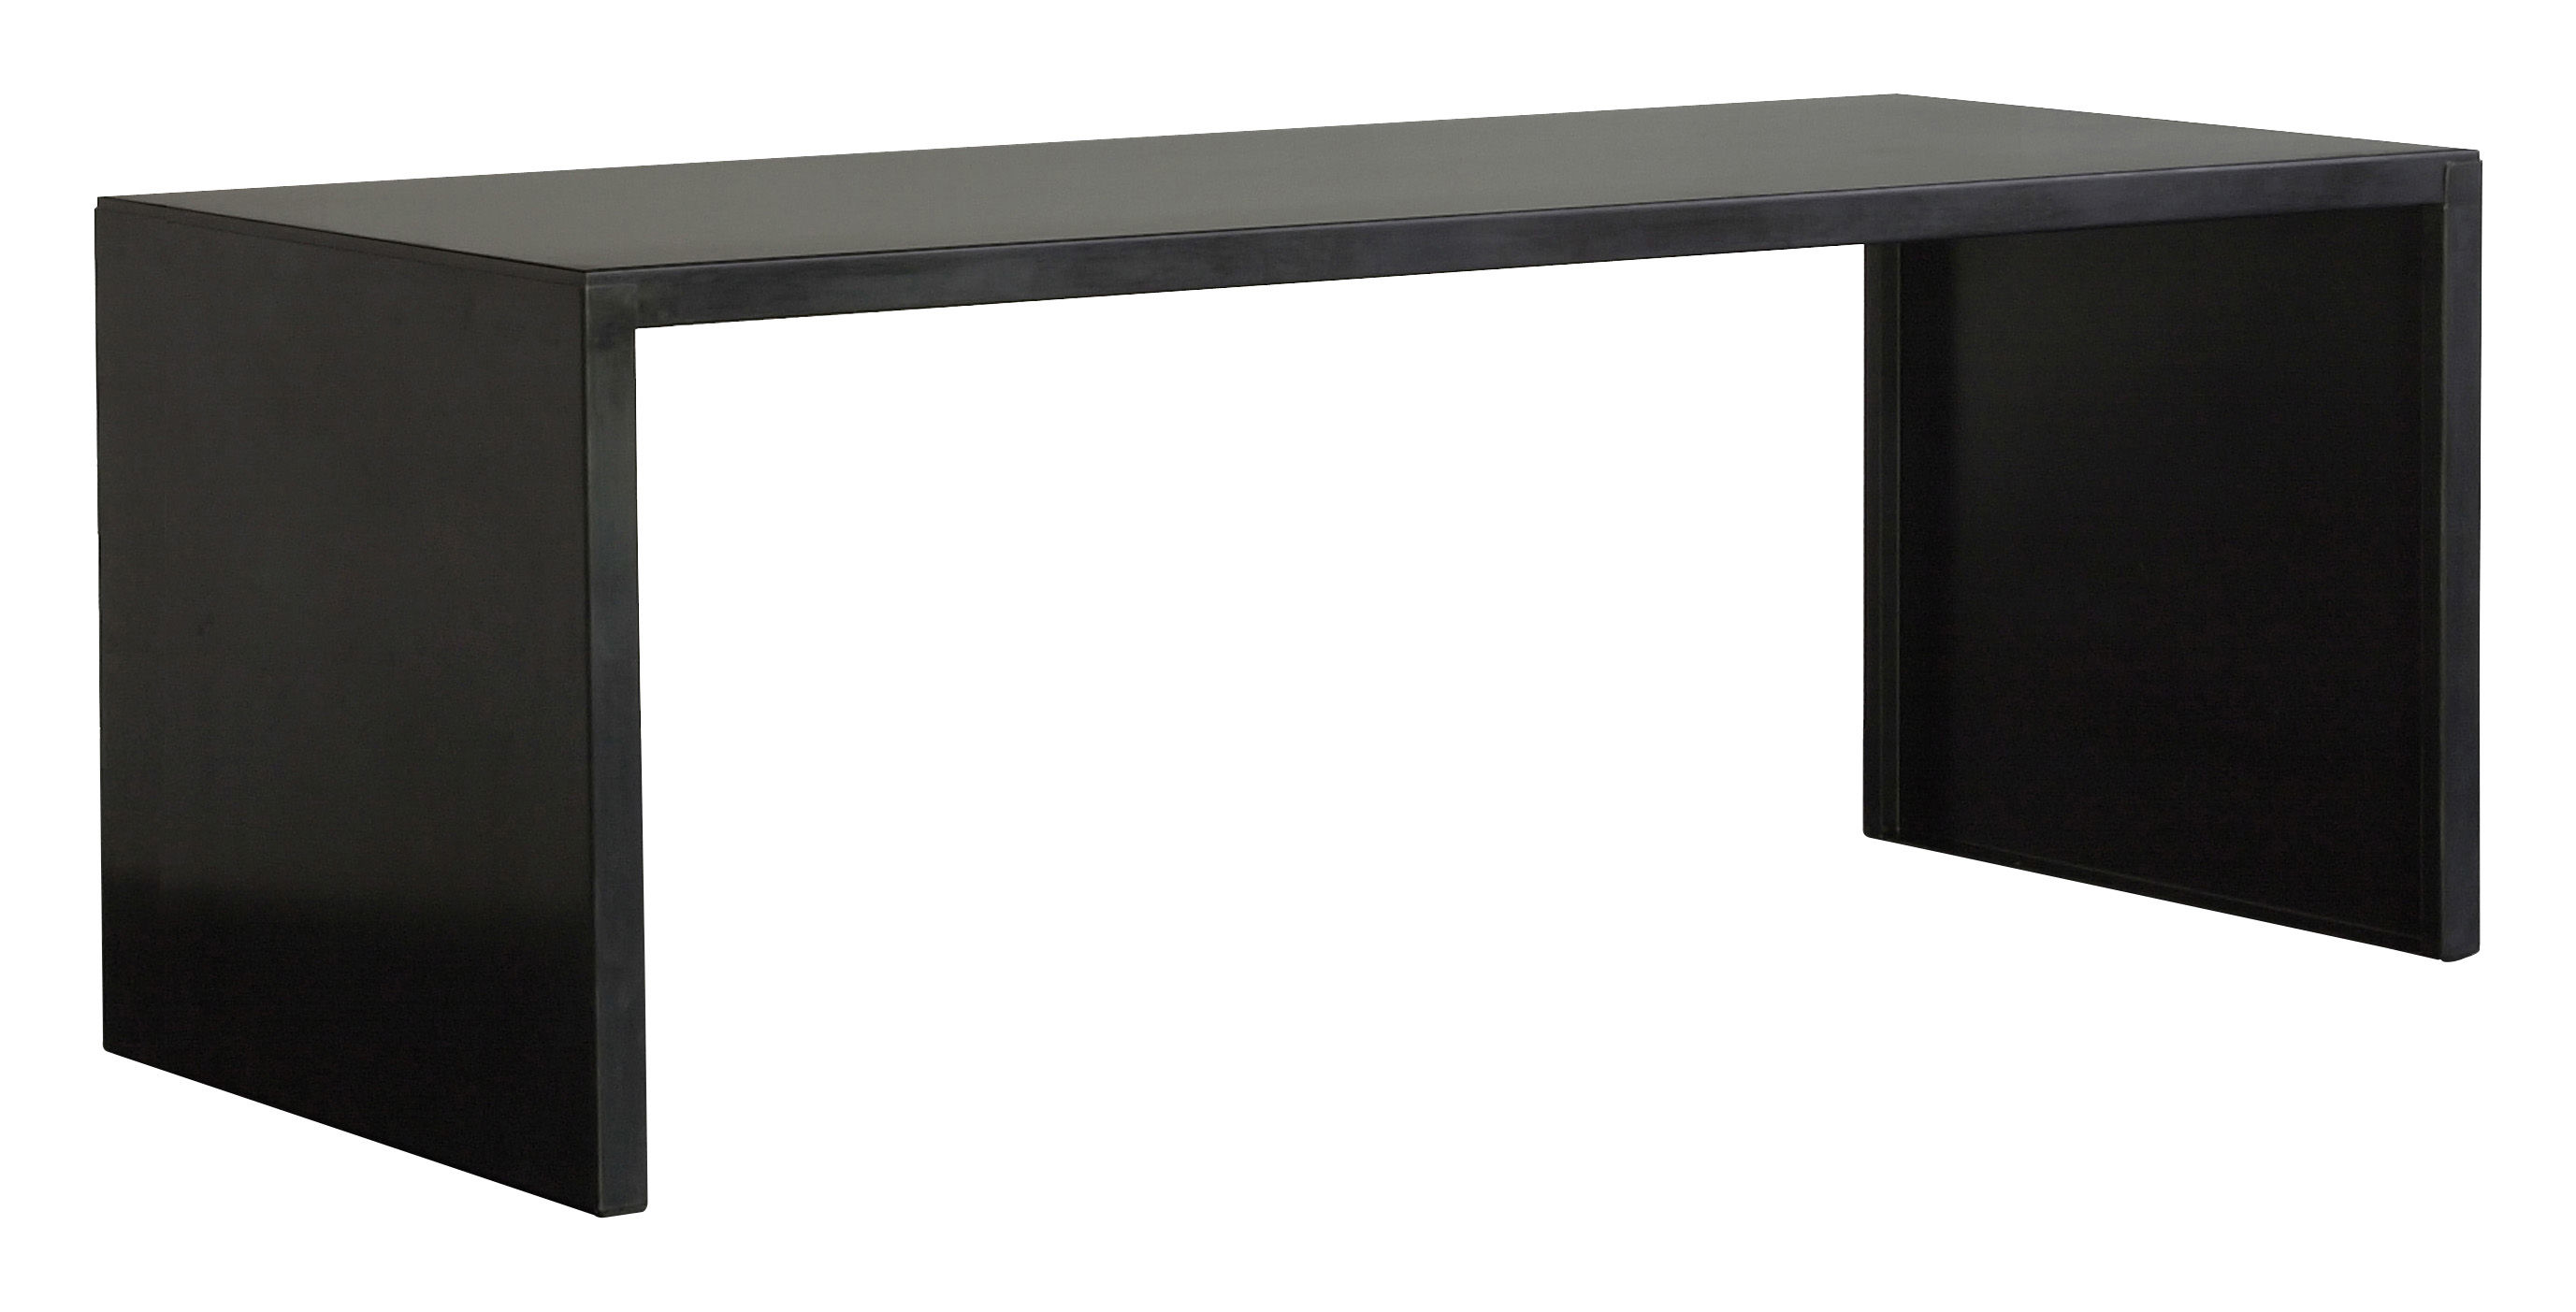 Big Irony Desk Table L 160 Cm Black Phosphated Steel